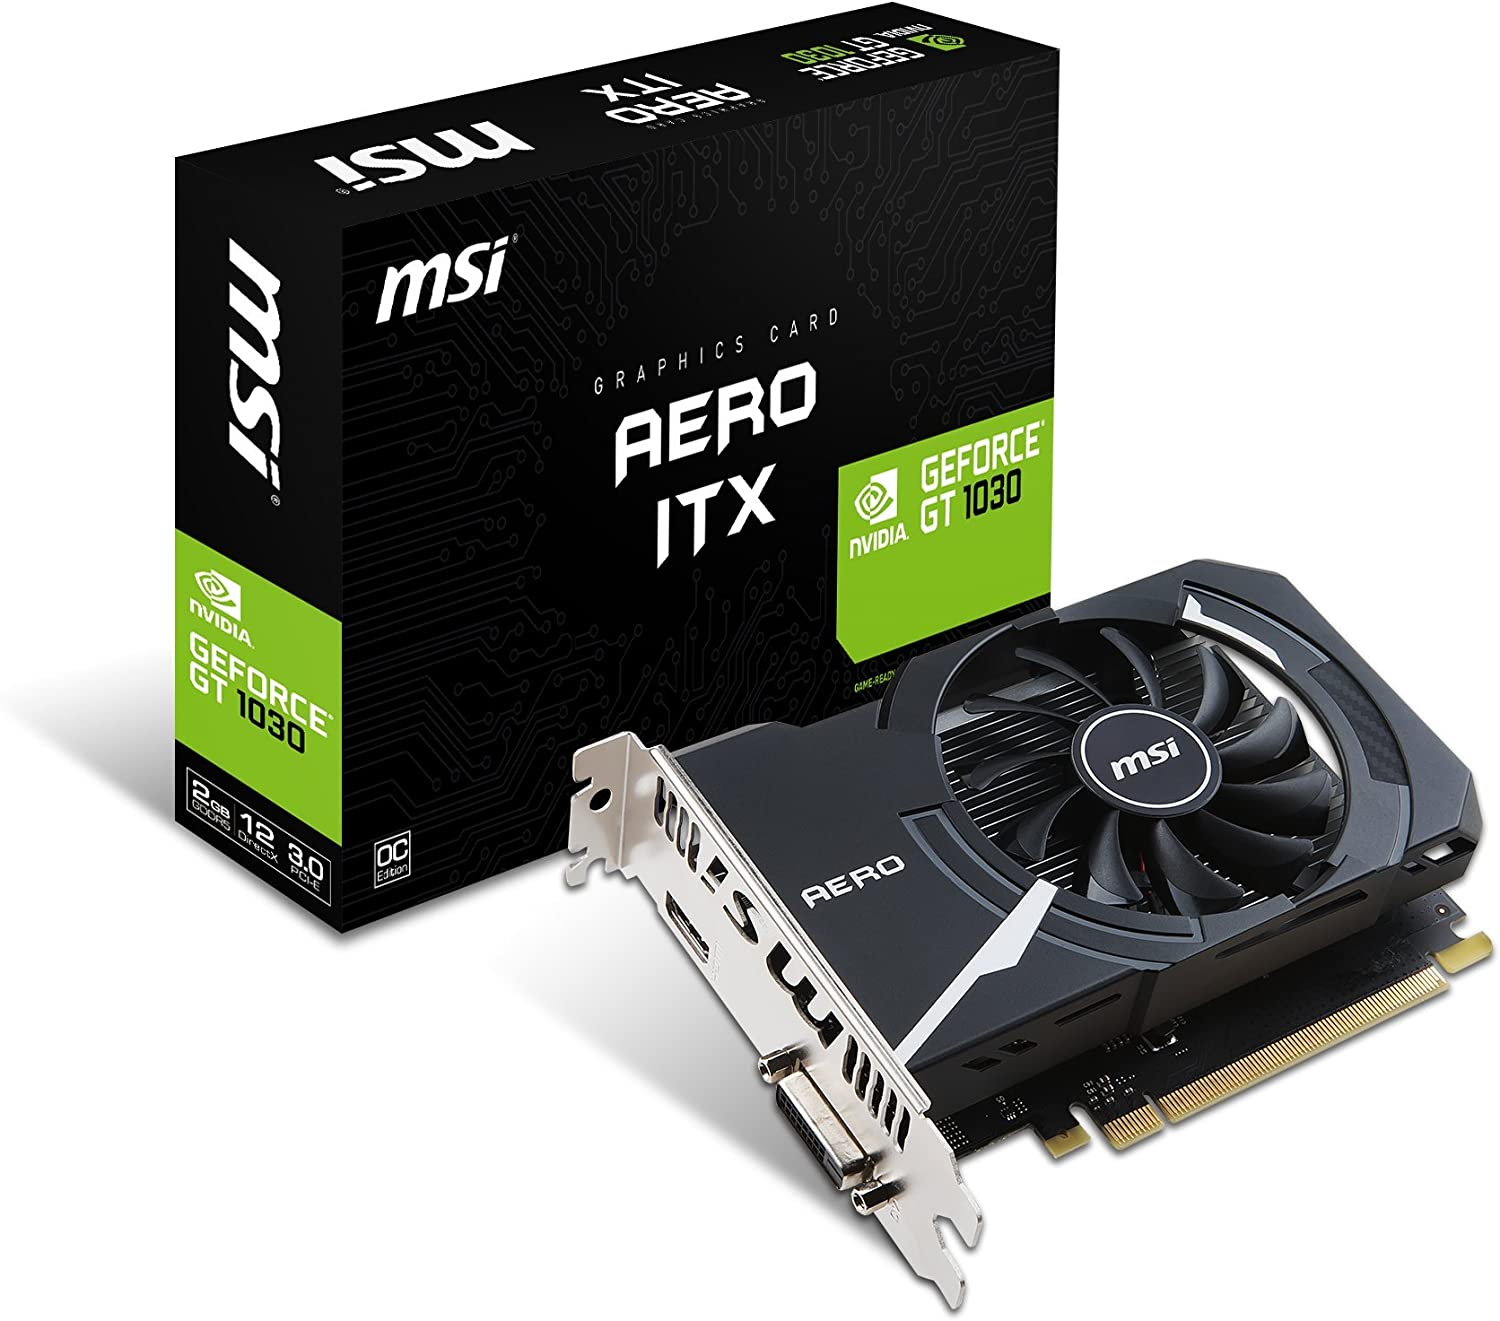 MSI Single Fan Short Foundation with graphics cards GeForce GT 1030 aero ITX, G OC